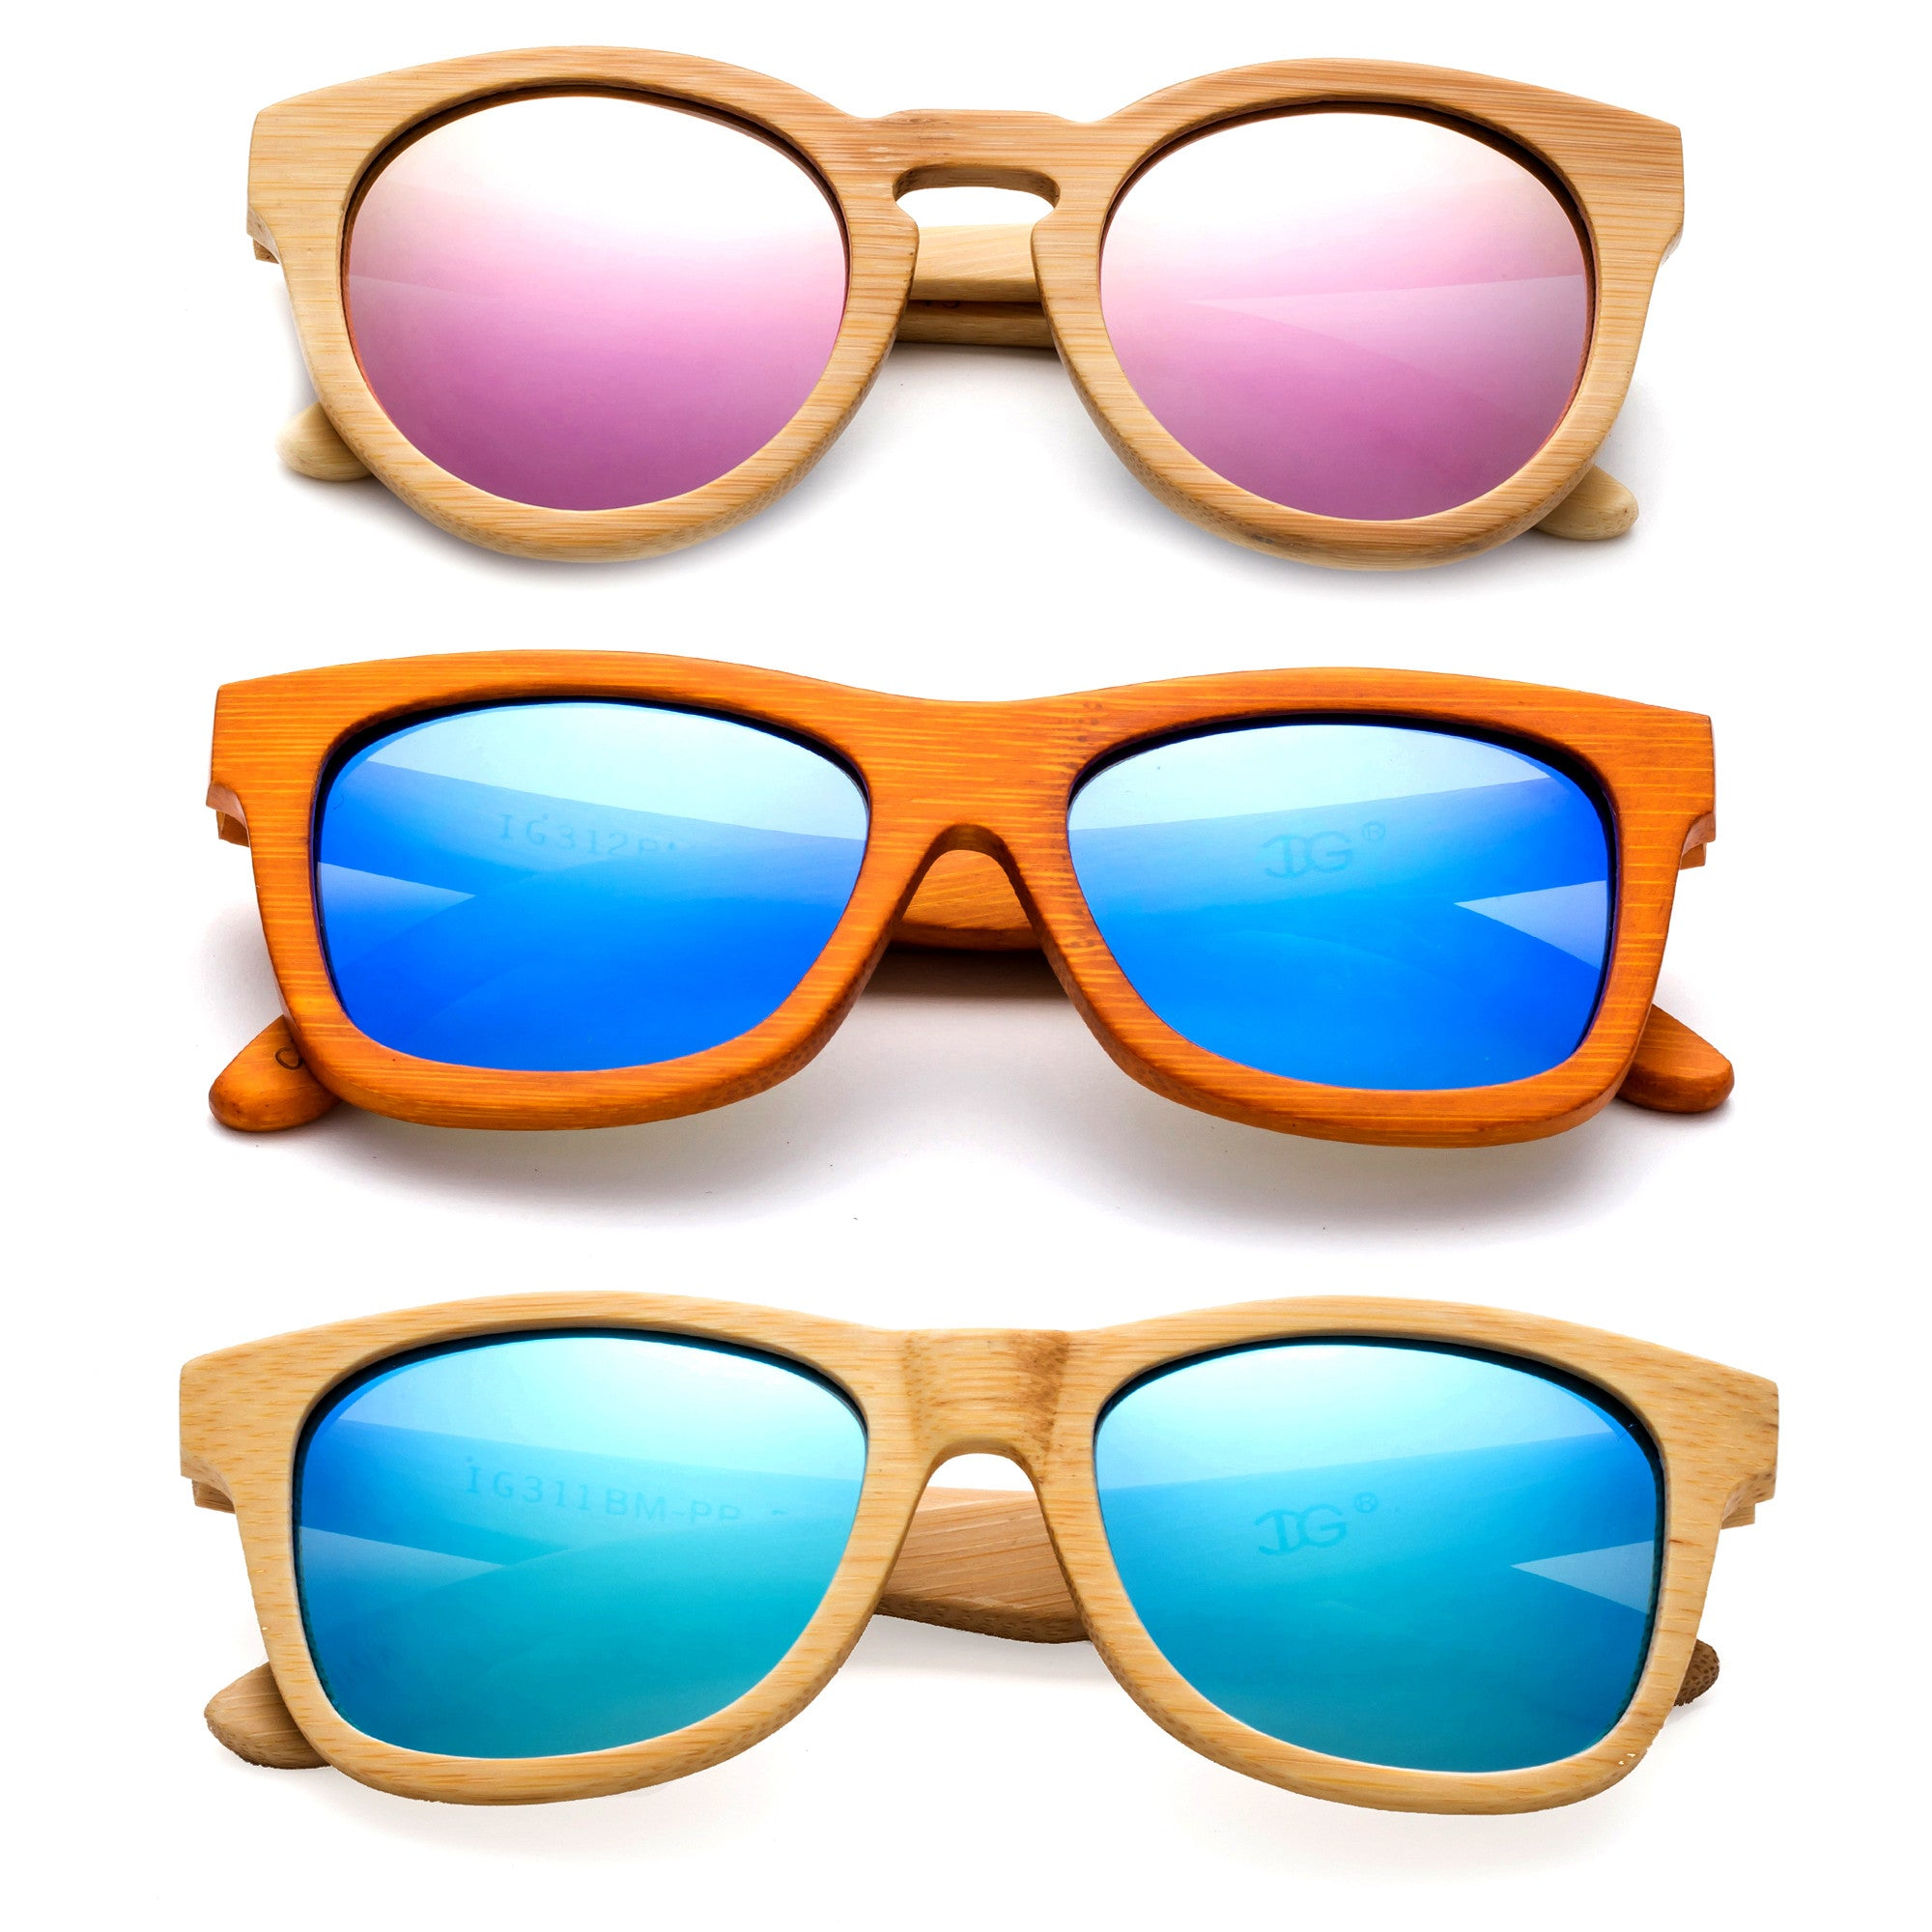 Cateye Bamboo Frames with polarized lenses for uv protection